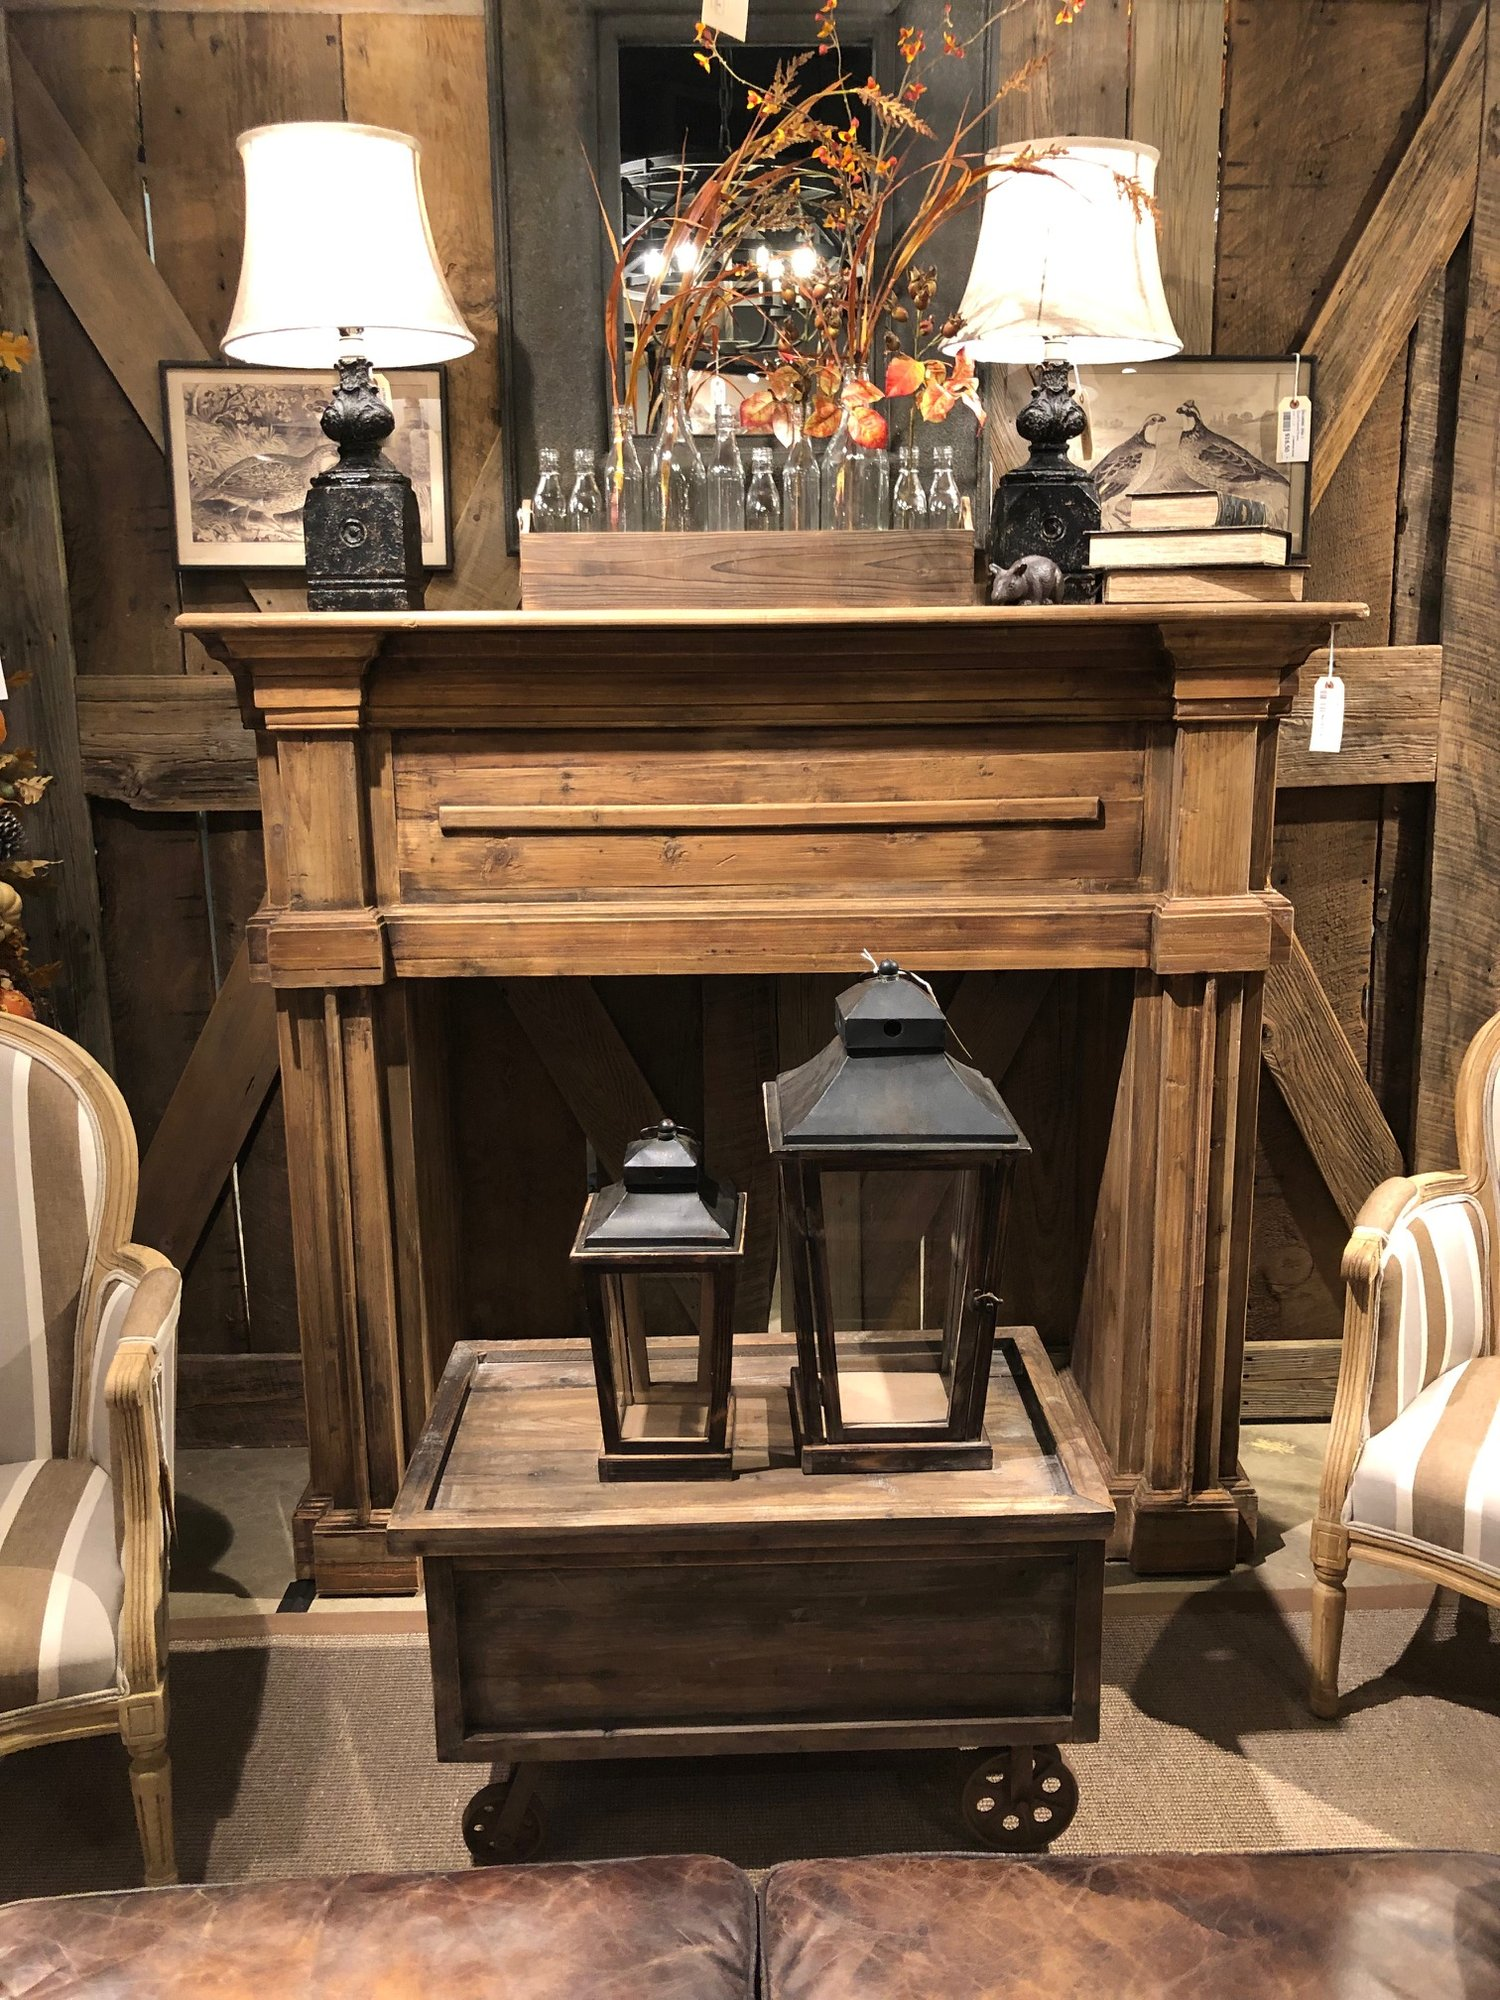 Fireplace Benches Elegant Plymouth Fireplace Mantel